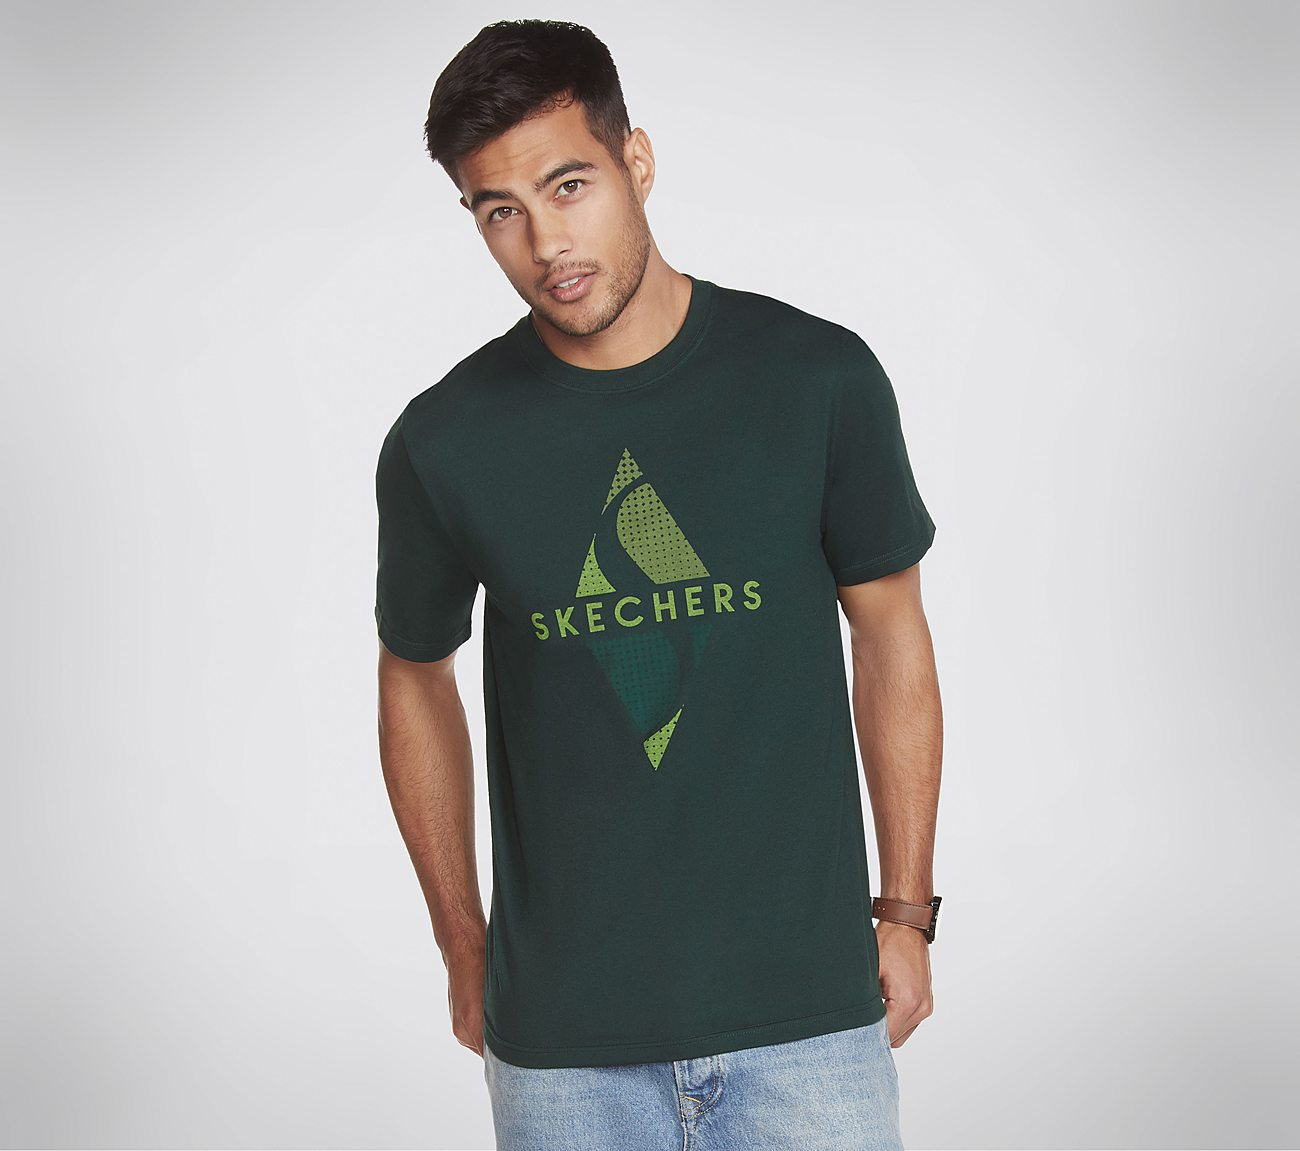 Skechers Apparel Texture Diamond Tee Shirt